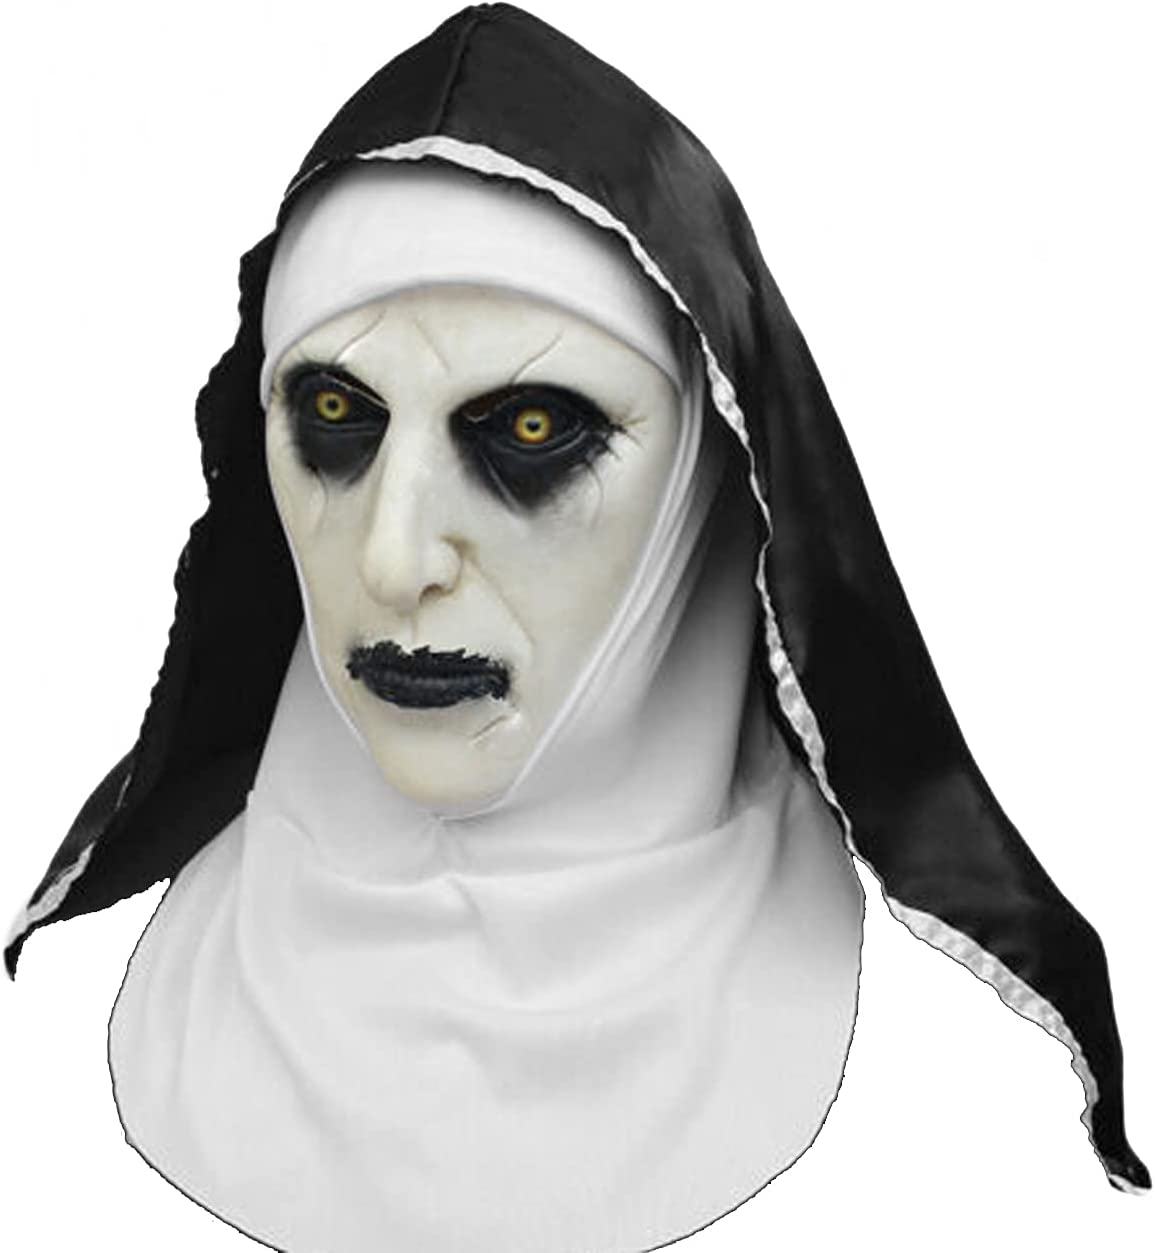 Horror Scary Nun Latex Full Head with Headscarf Cospl Valak Max 58% OFF security Mask